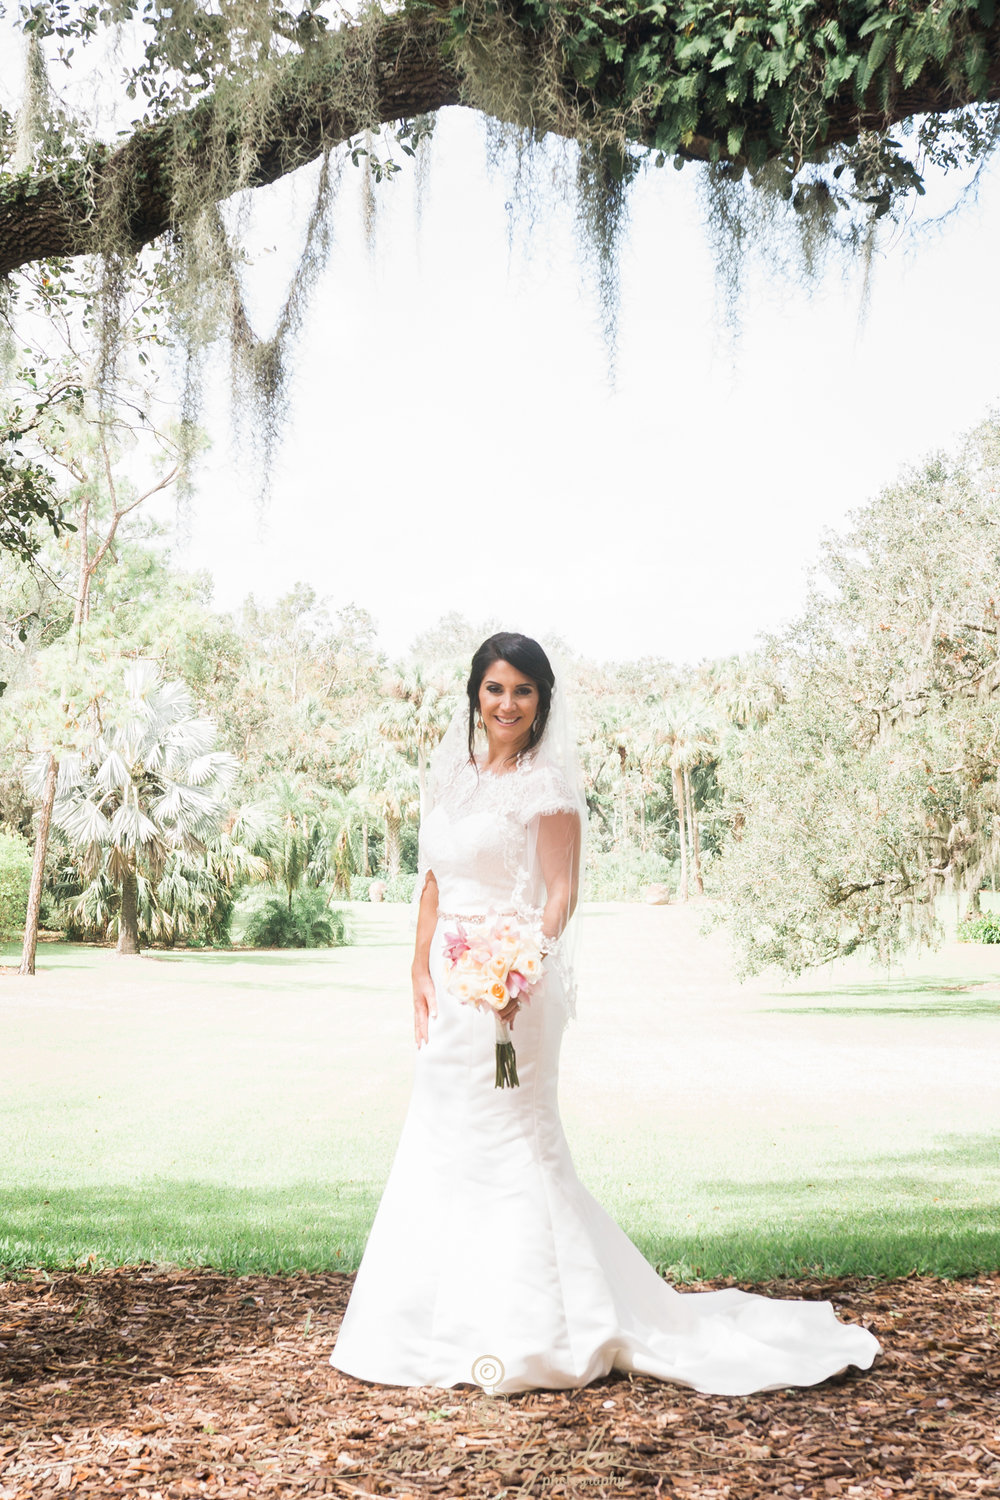 Bok-tower-gardens-wedding-photo, bride-photo, Tampa-wedding-photographer